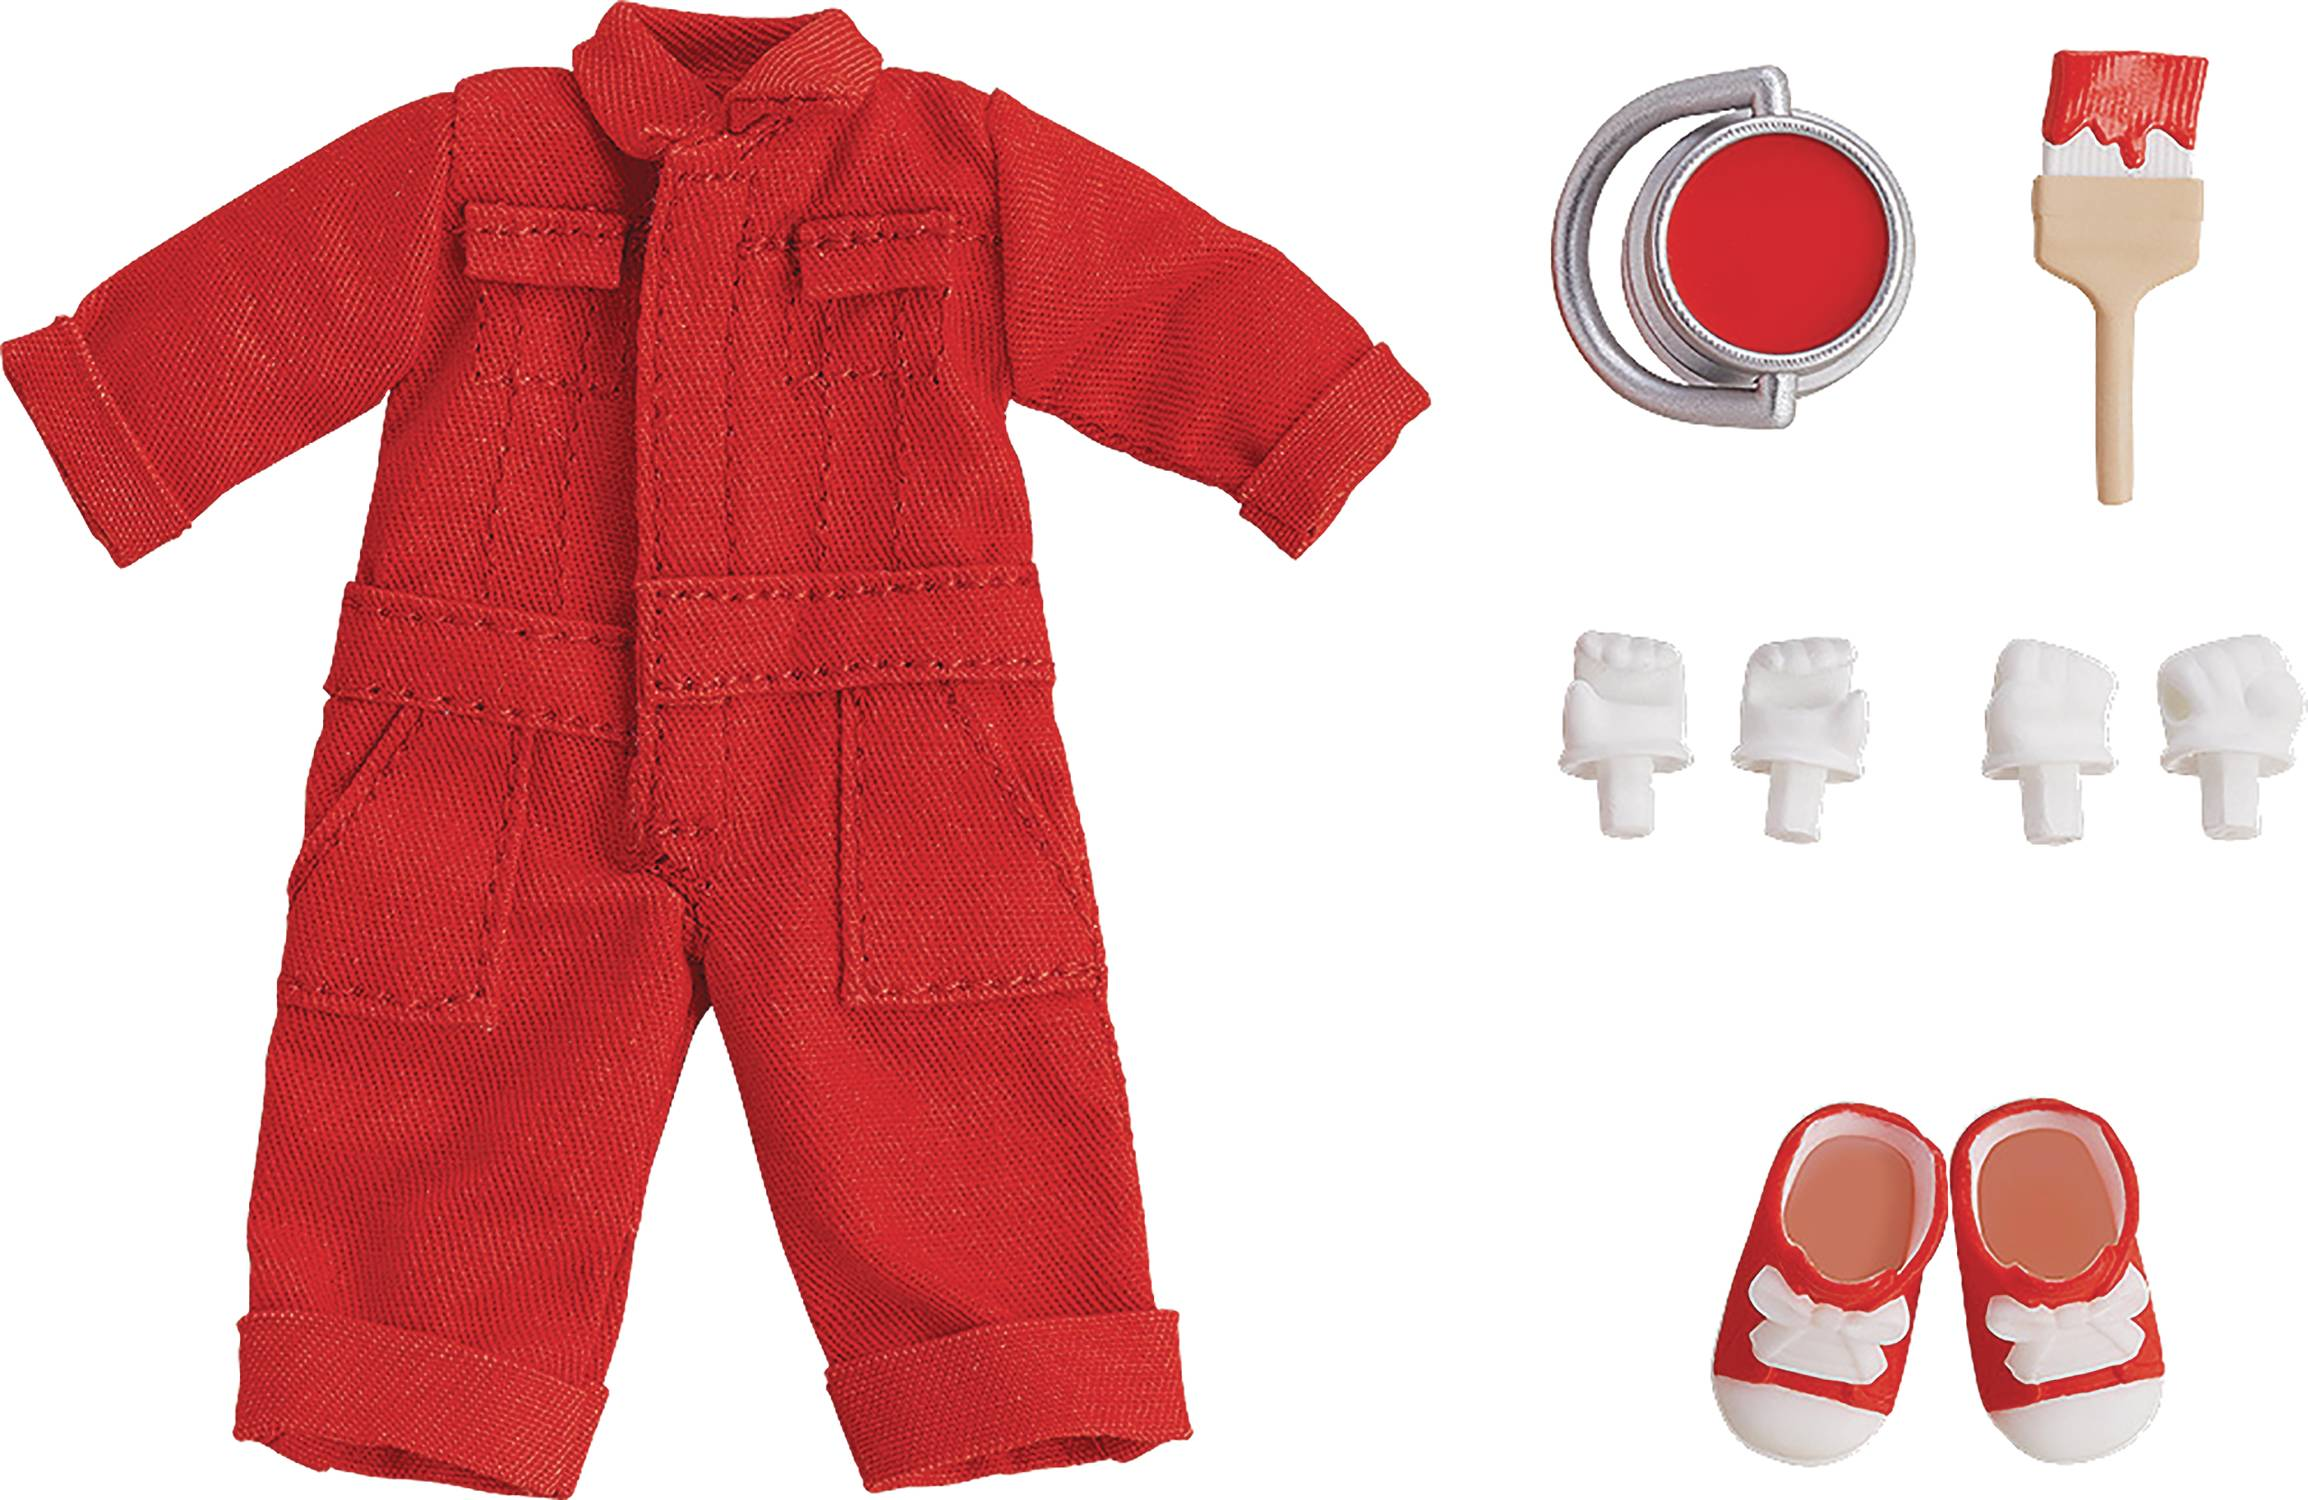 NENDOROID DOLL OUTFIT SET COLORFUL OVERALLS RED VER